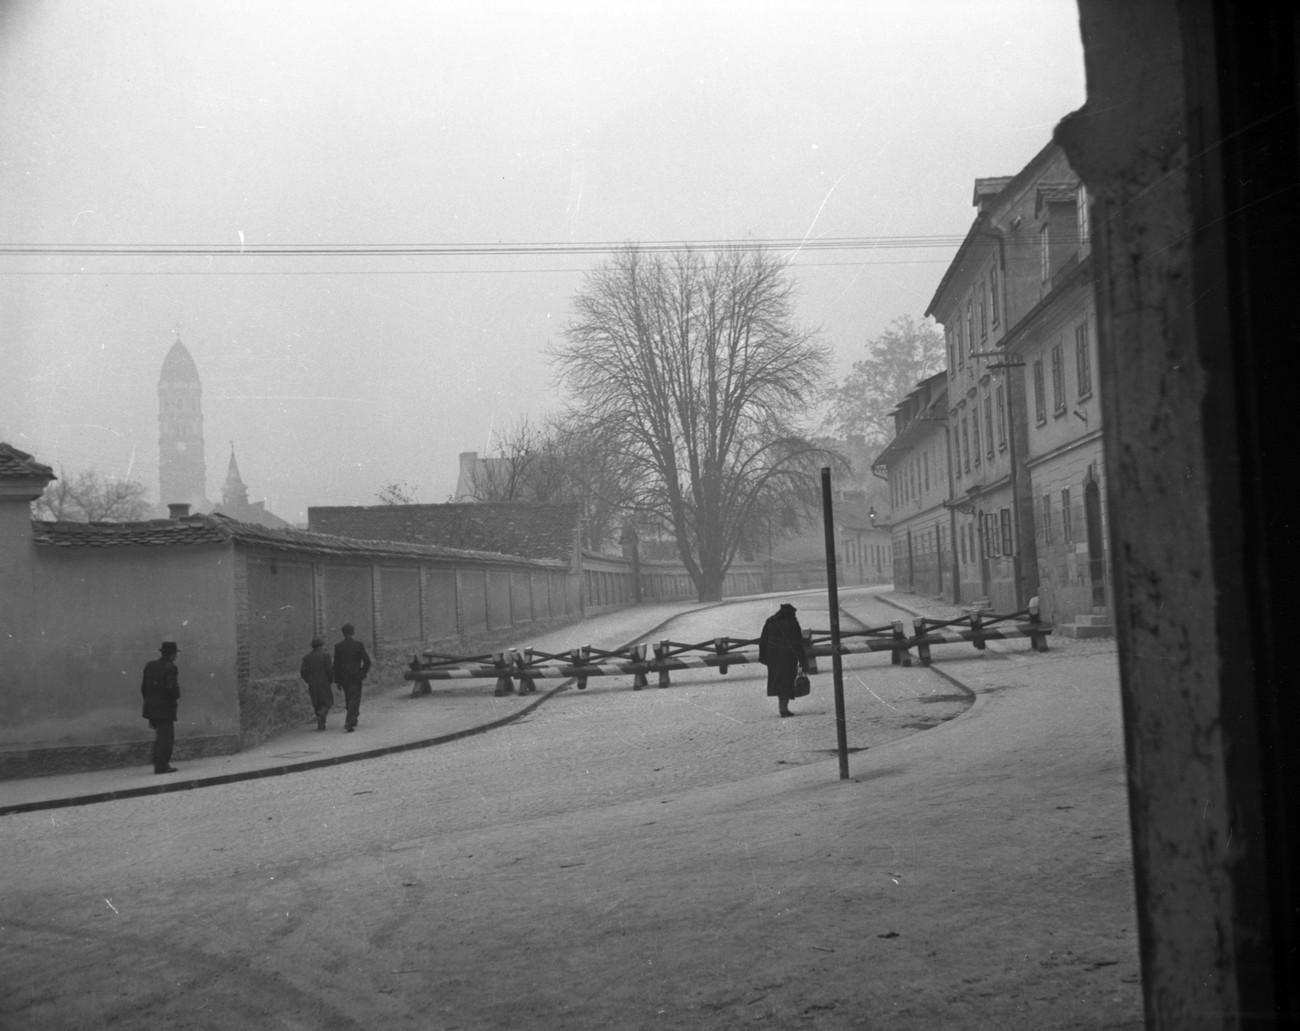 Czech Hedgehogs at Streliška street. The Italian occupation authority not only set up an exterior wire ring but also an interior ring around the city centre, which was supposed to be completed by October 1943. The total 34 checkpoints, for which they used 225 Czech hedgehogs (1.25 to 3 m long), were erected next to main buildings of the Italian civilian authority, Carabinieri posts and barracks which had been additionally fortified and protected with wire. Author: Jakob Prešern. MNZS.